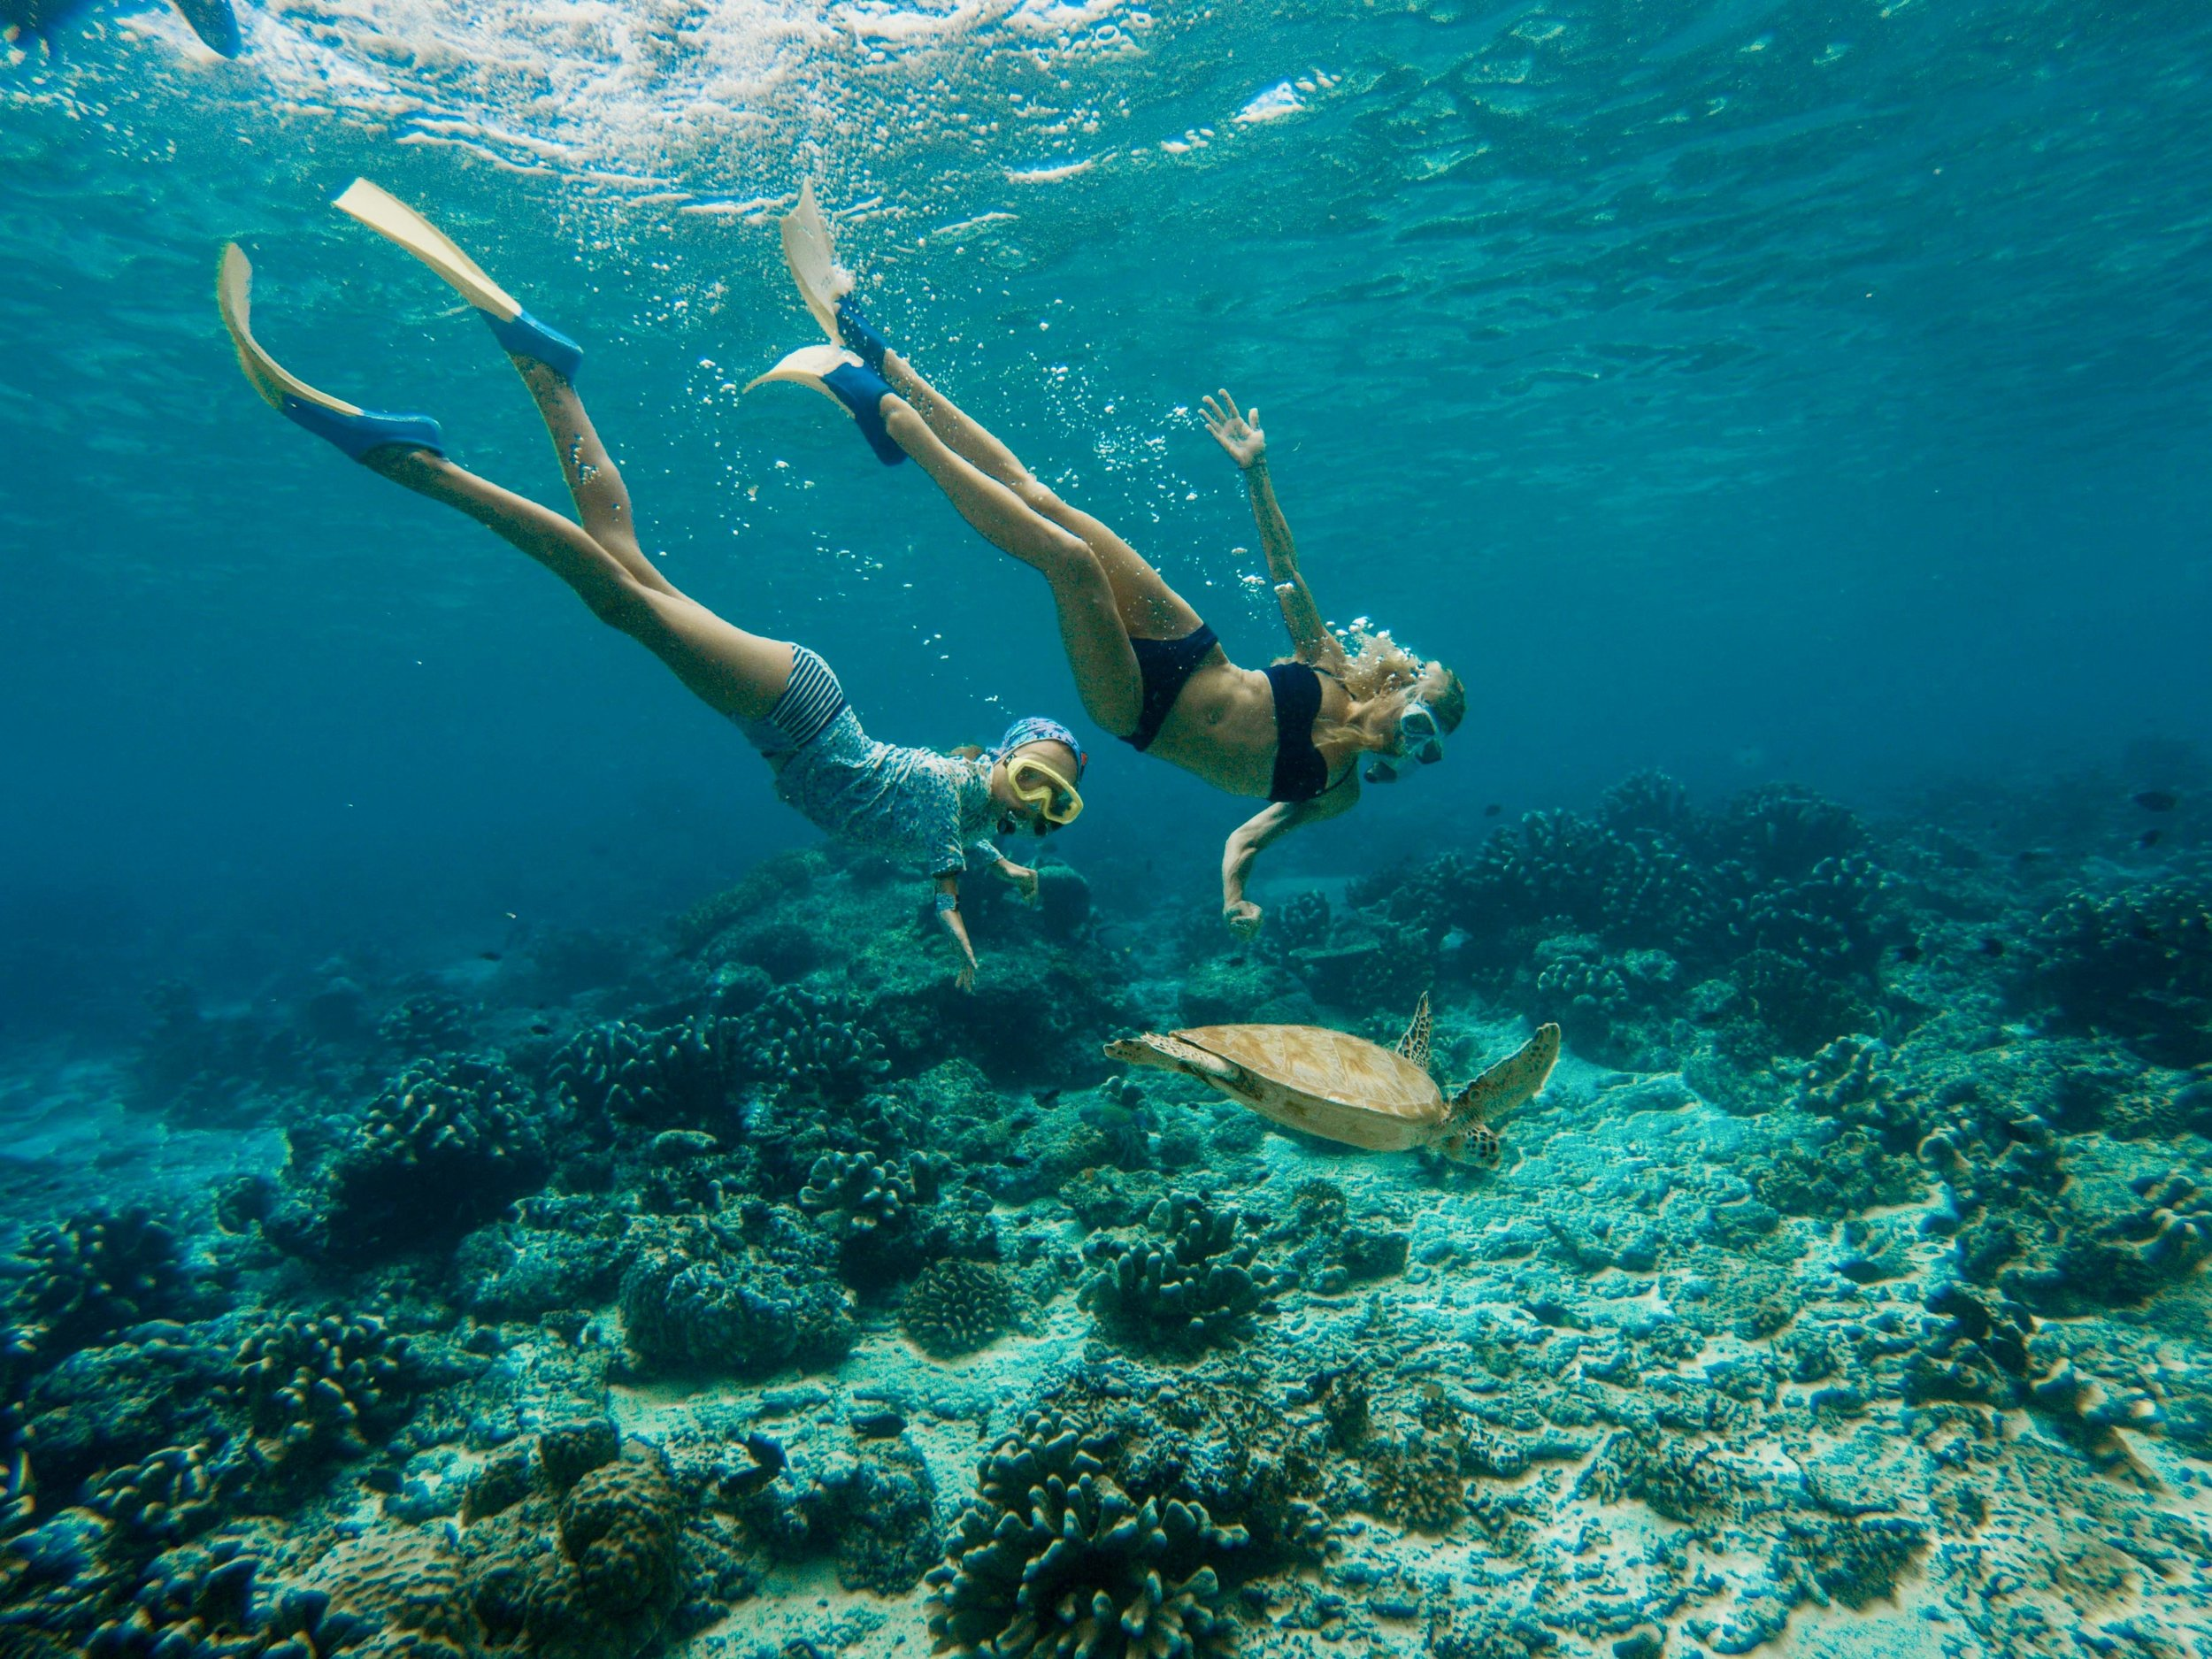 Mom and daughter date underwater in Malaysia. During our travels, we have fallen in love with the ocean and the underwater world. By far, our favorite is the sea turtle, which we were fortunate enough to spot in the beautiful waters of the Perhentian Islands. These 2 free divers make it look easy going down to depths of 15-20 feet, to get a closer view of the beautiful marine life.